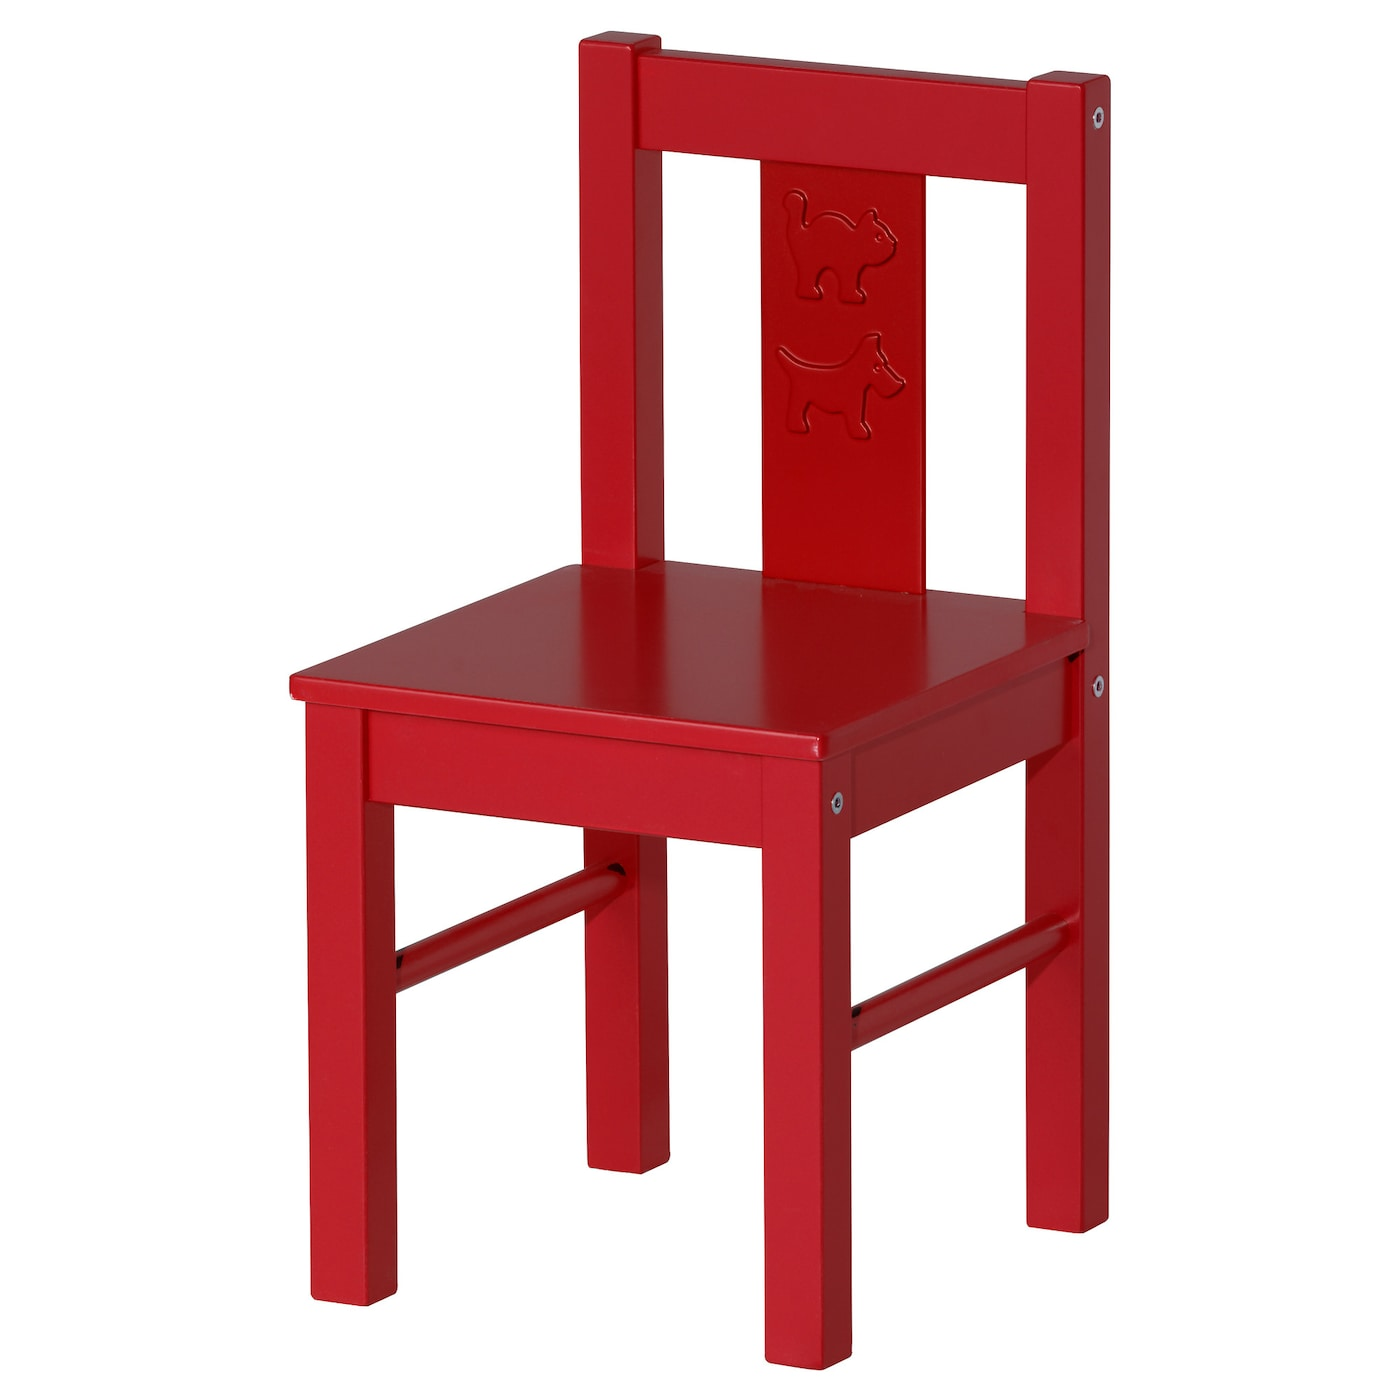 Kritter children 39 s chair red ikea for Small chair for kid